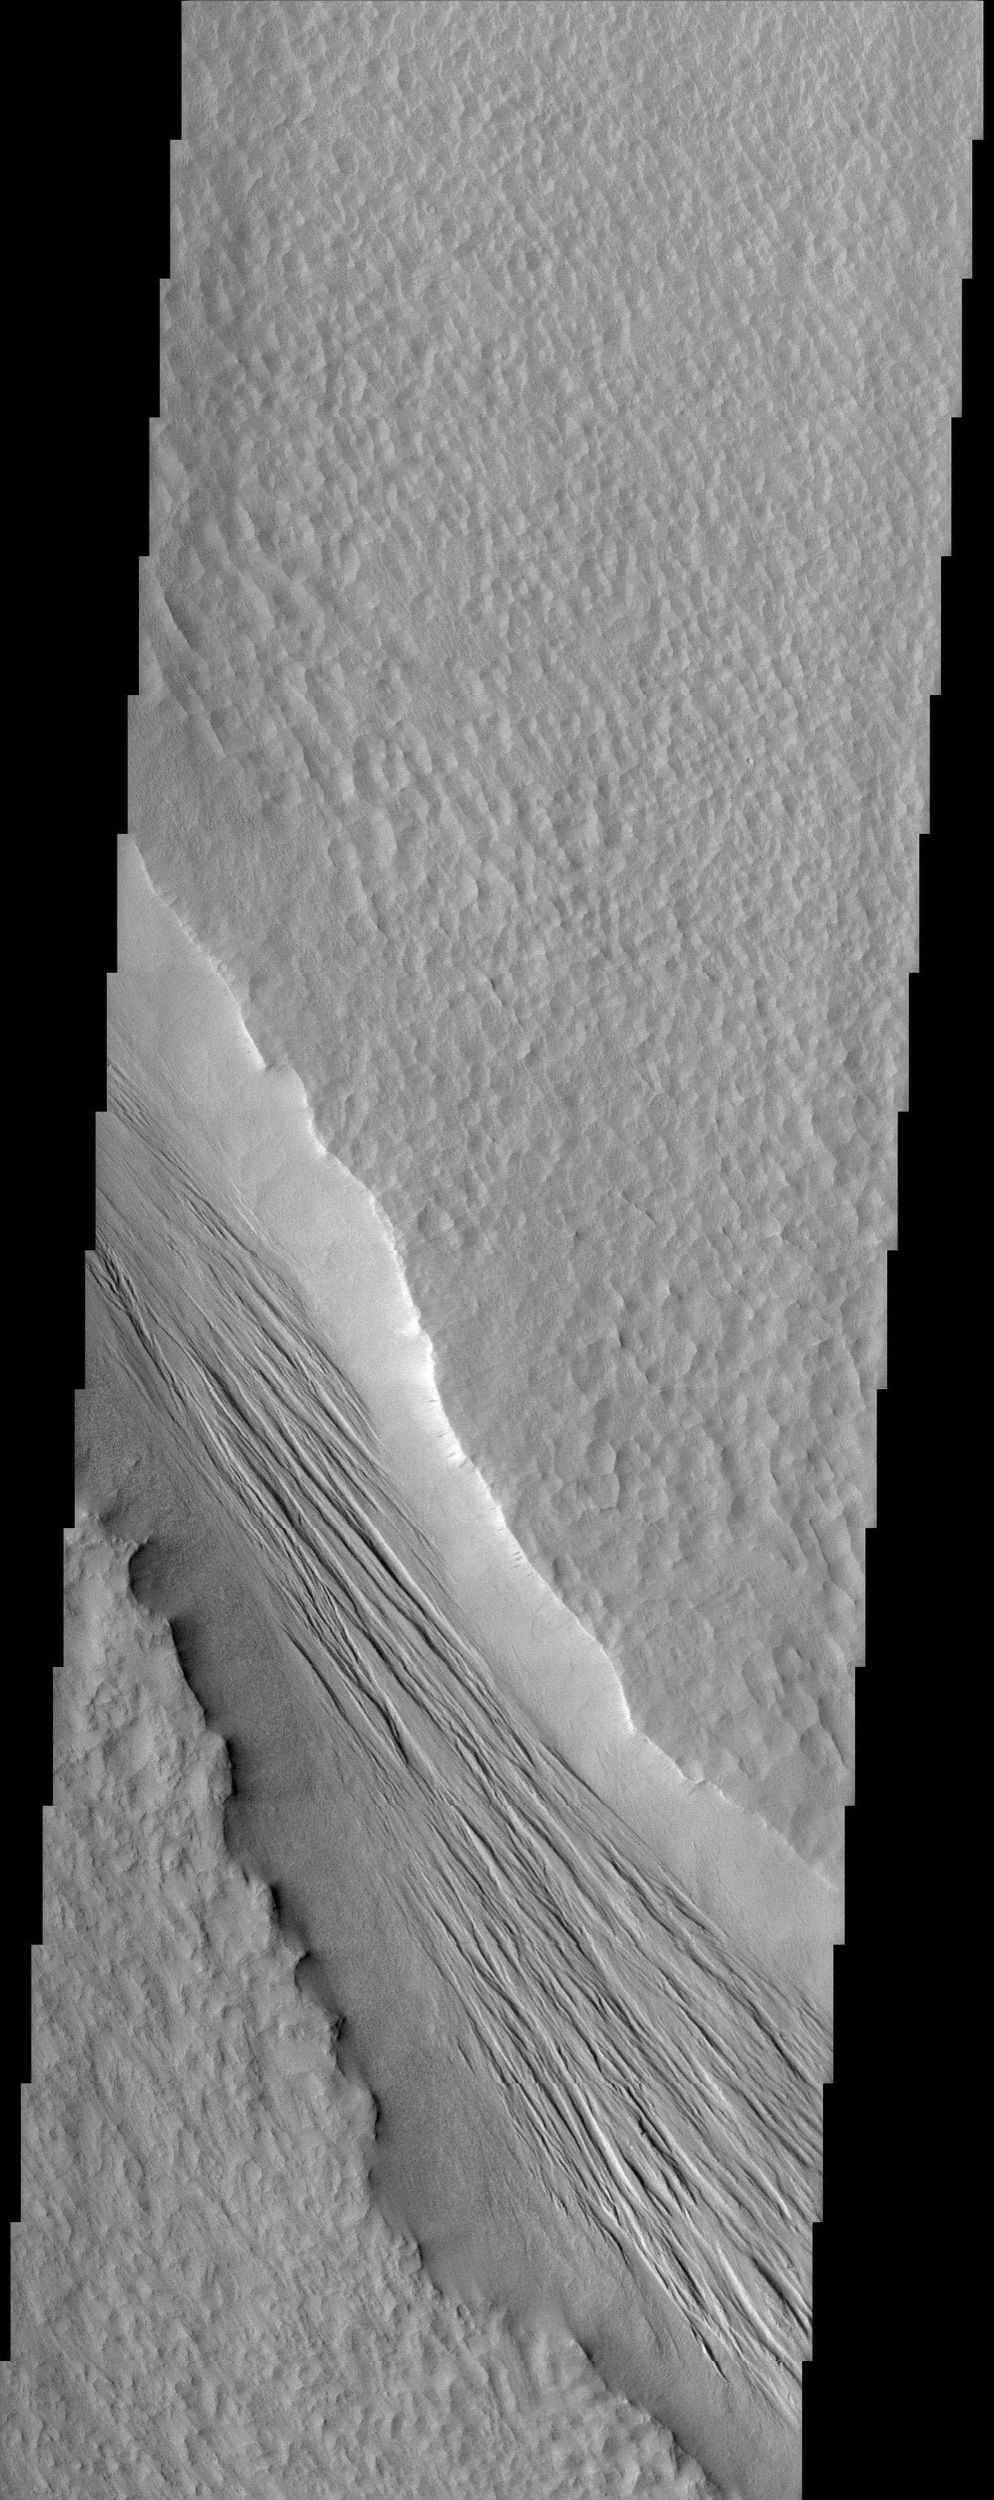 The Tharsis Montes region on Mars is a major center of volcanic and tectonic activity. The channel in this image from NASA's Mars Odyssey is west of the relatively small volcano called Biblis Patera although it shows no obvious relationship to it.